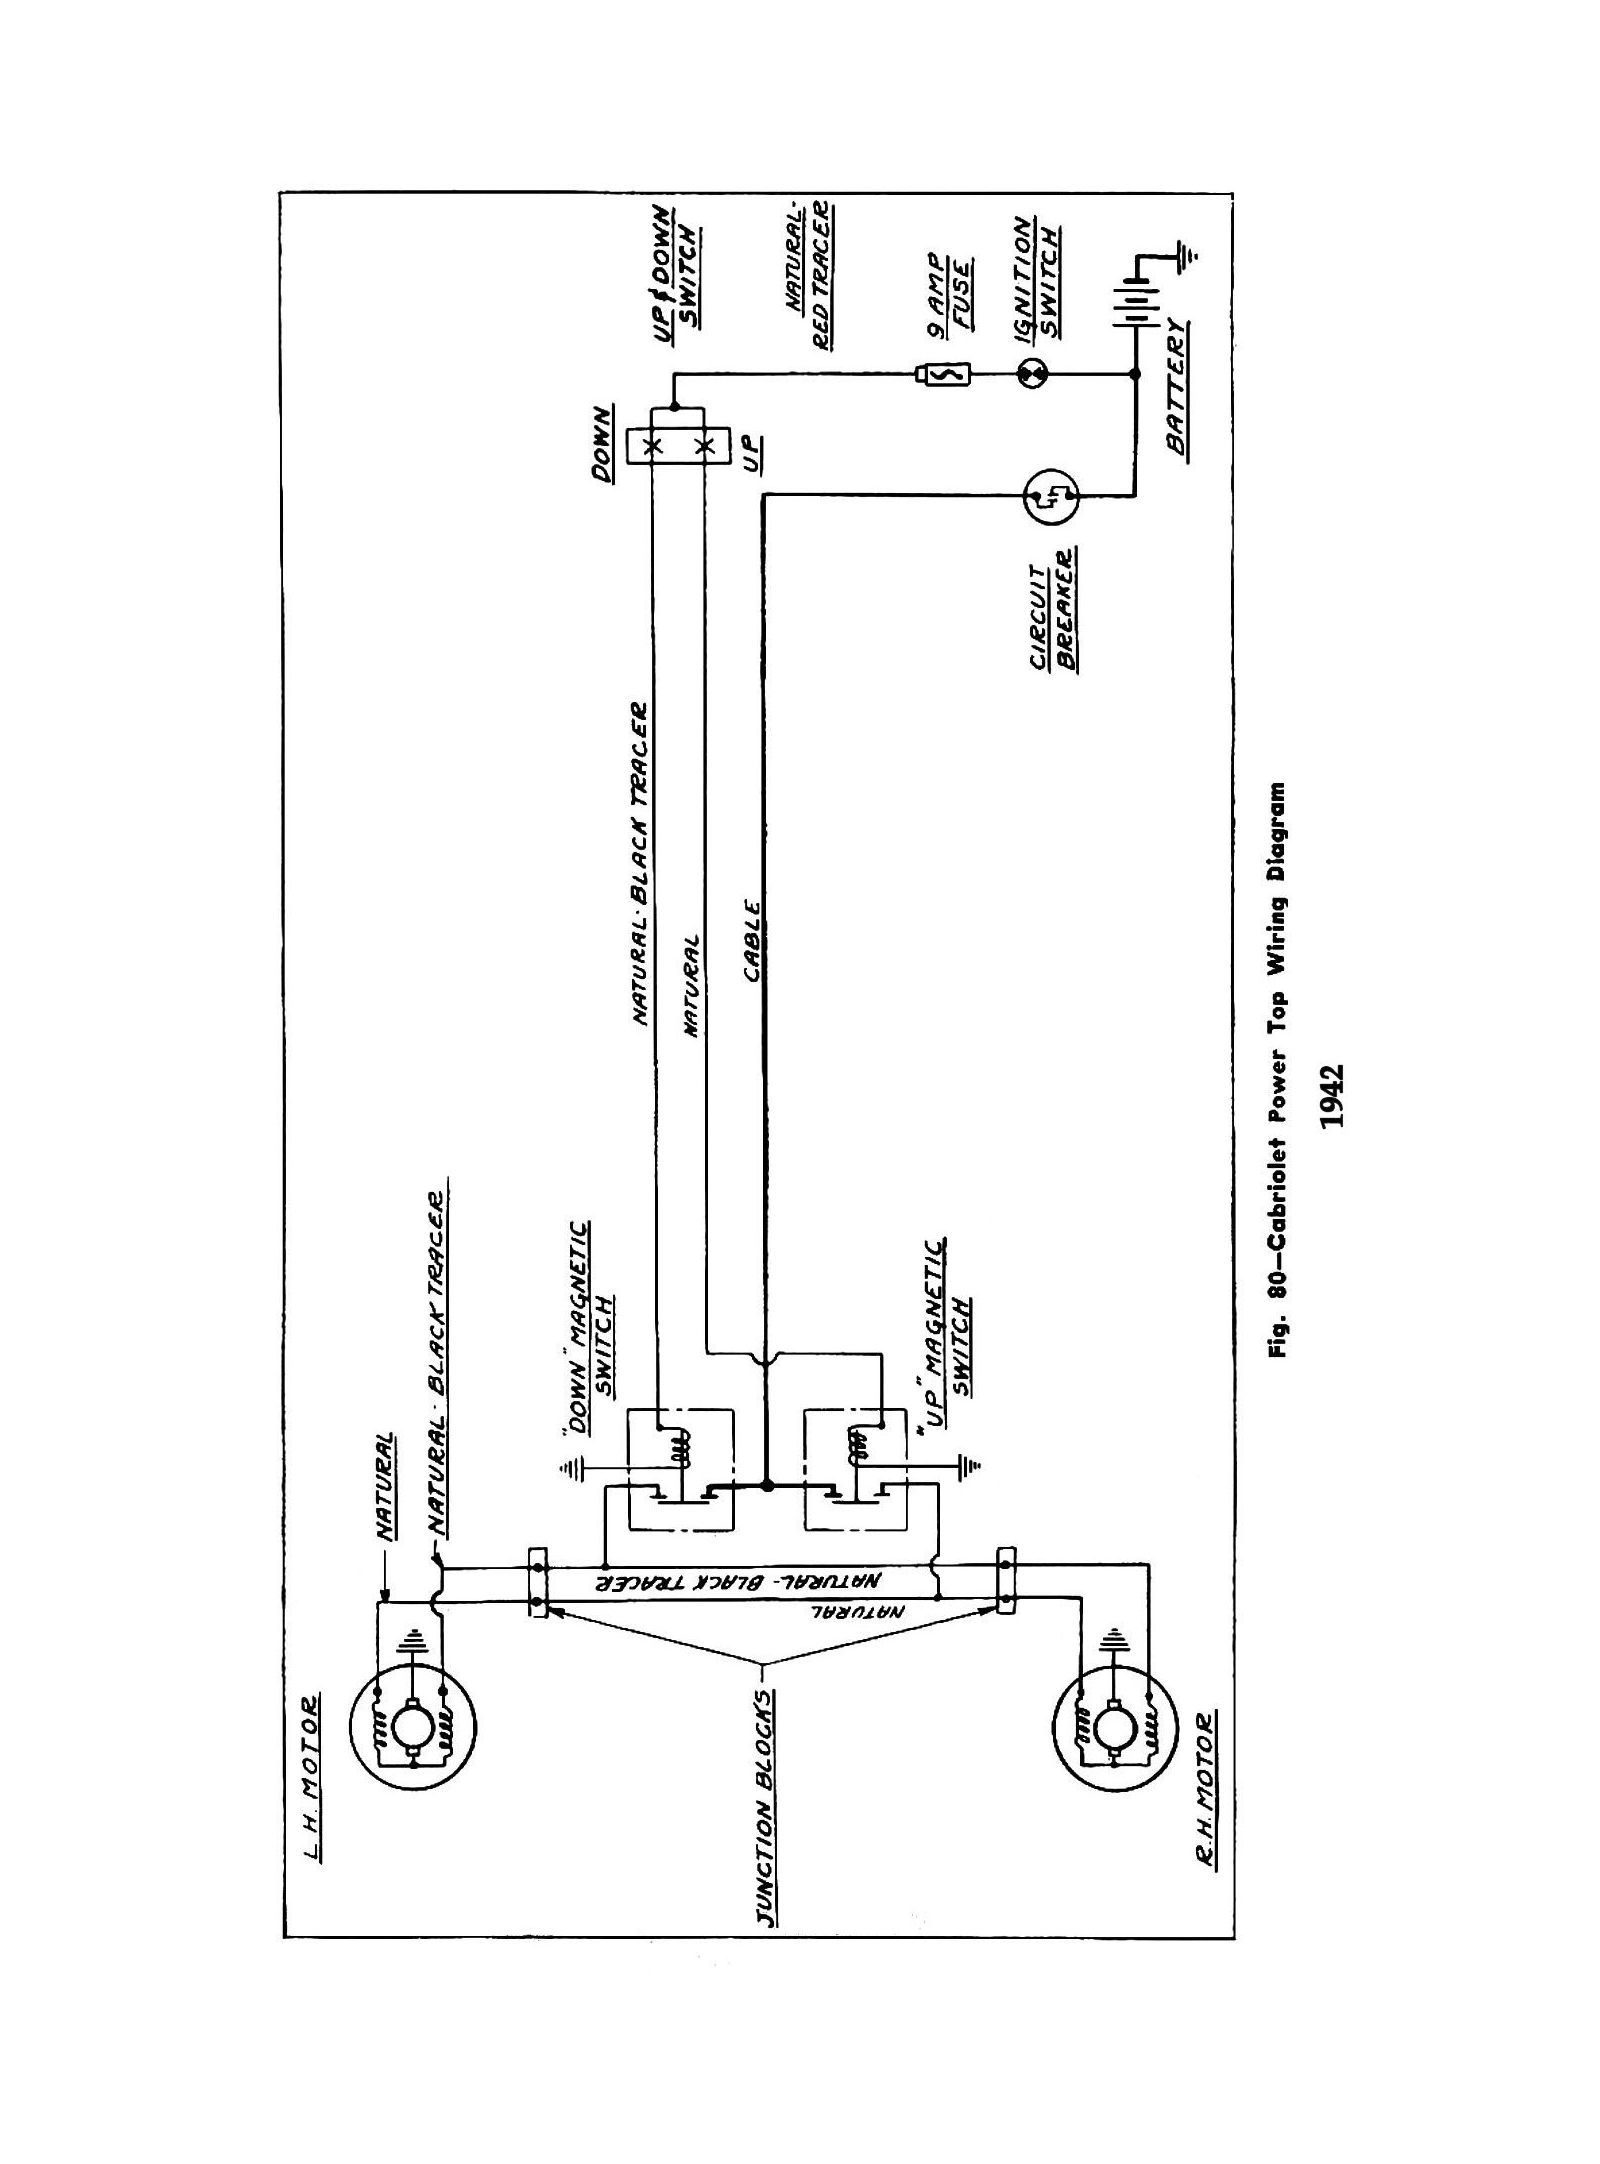 fluorescent light fittings wiring diagram